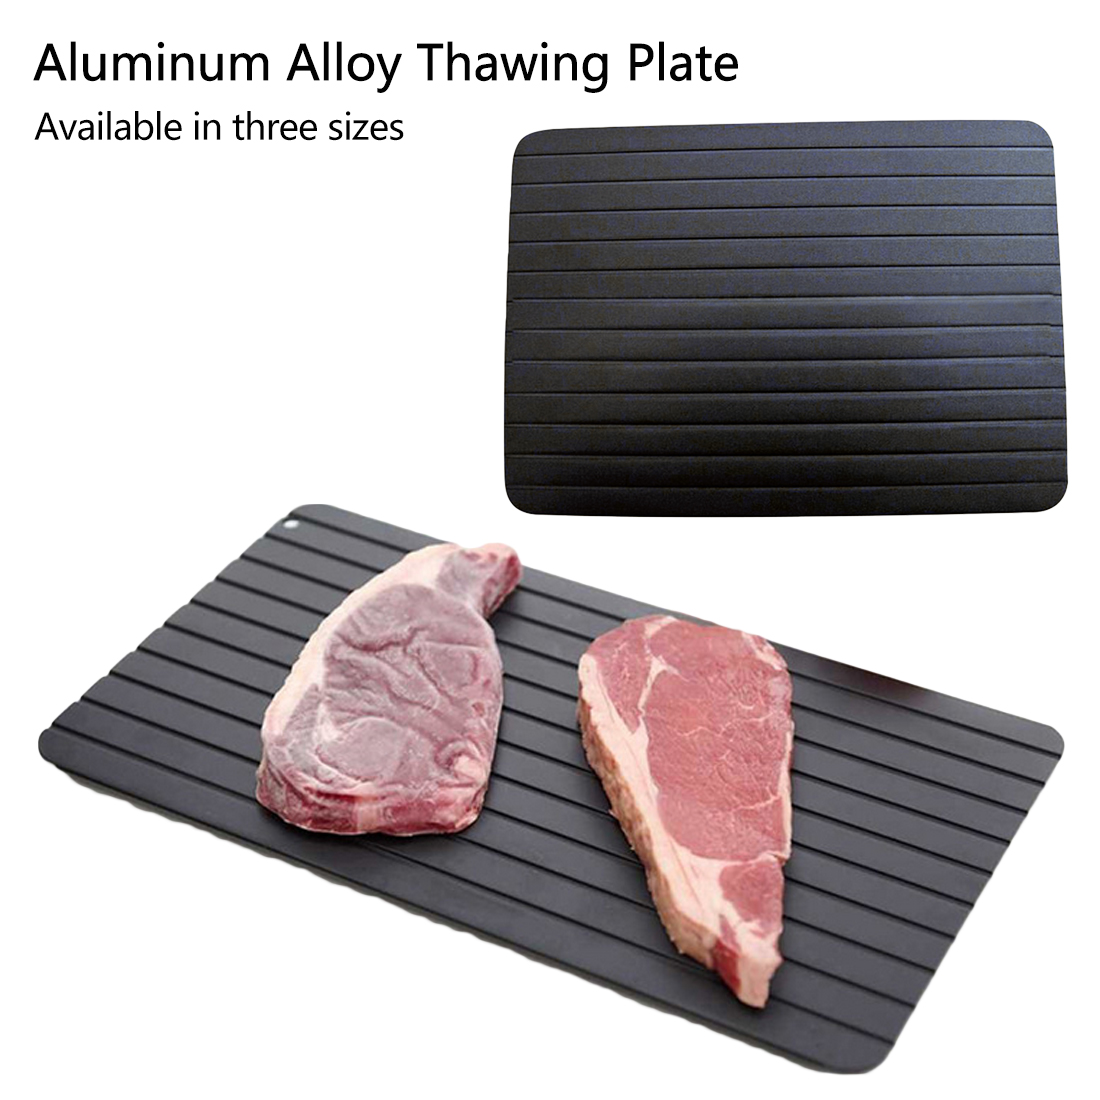 Fast Defrosting Tray Thaw Frozen Food Meat Fruit Quick Defrosting Plate Board Defrost Home Kitchen Gadget Tool